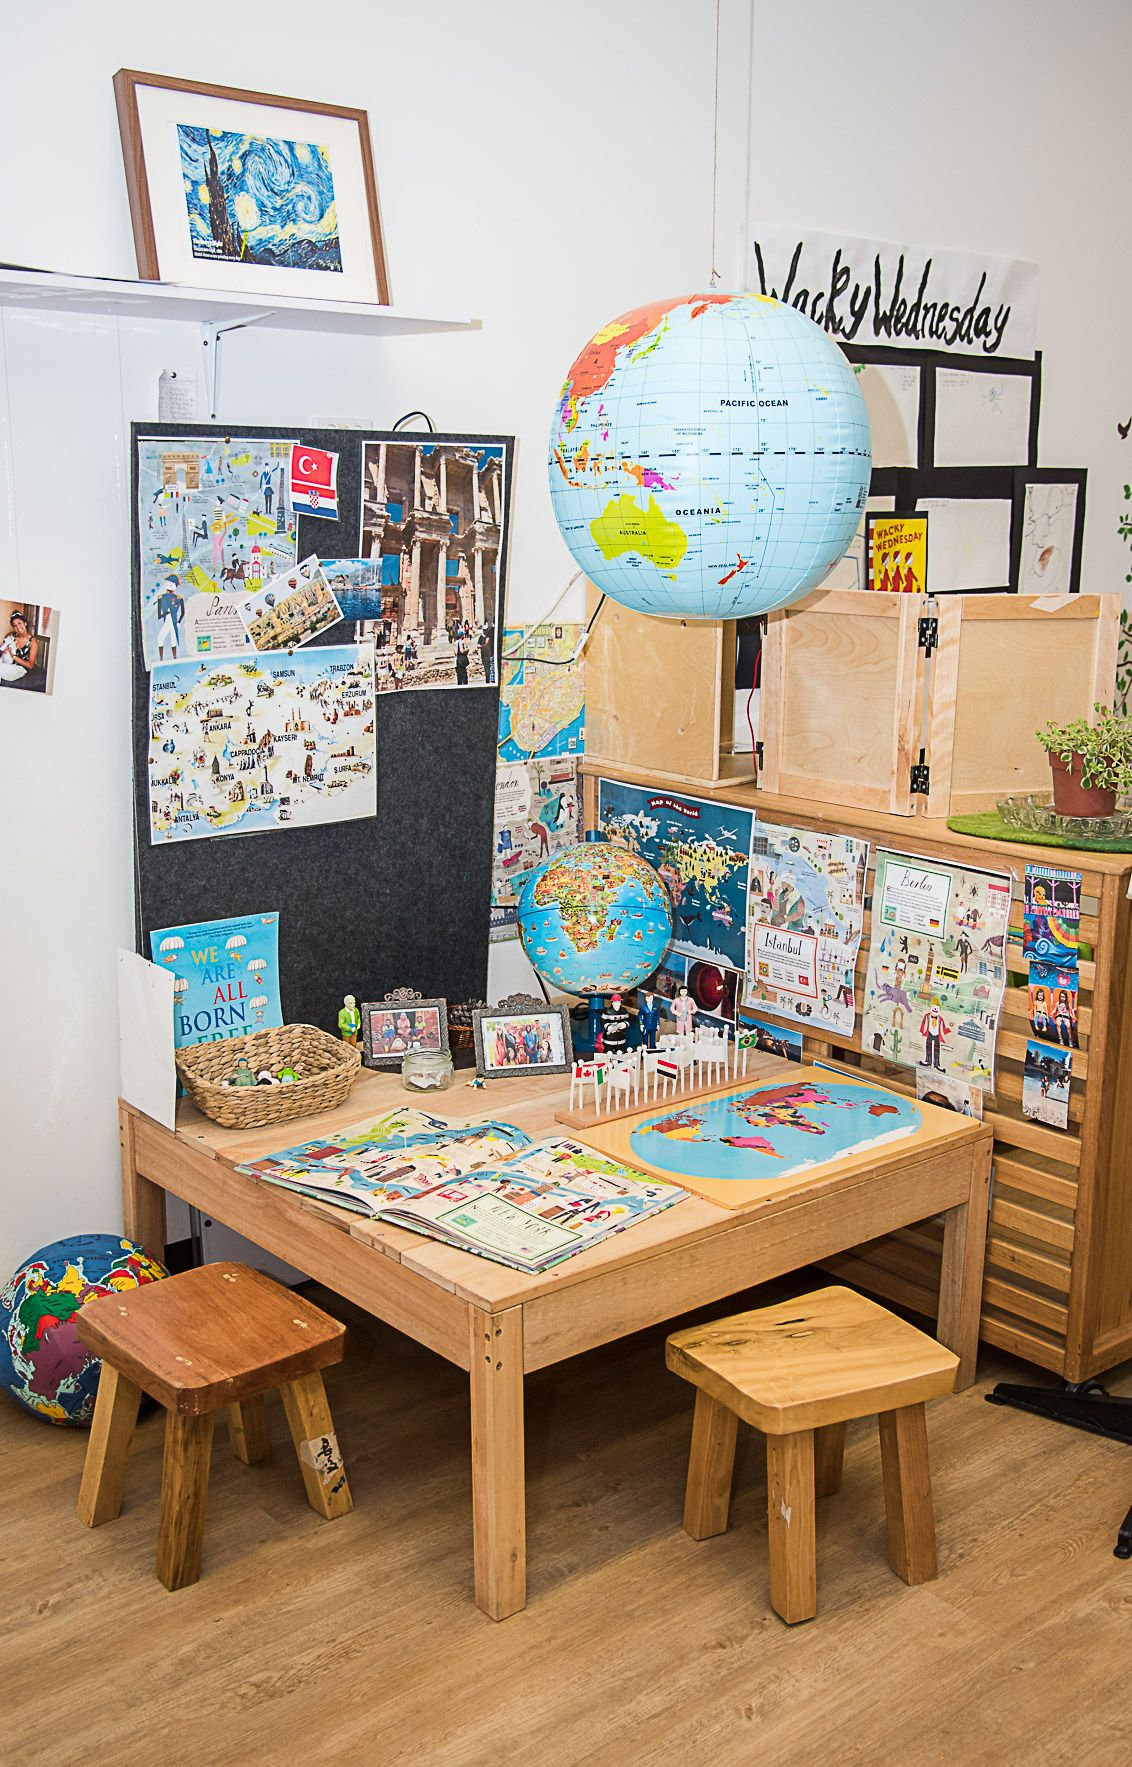 Inviting Geography Play Space Ready For Play Based